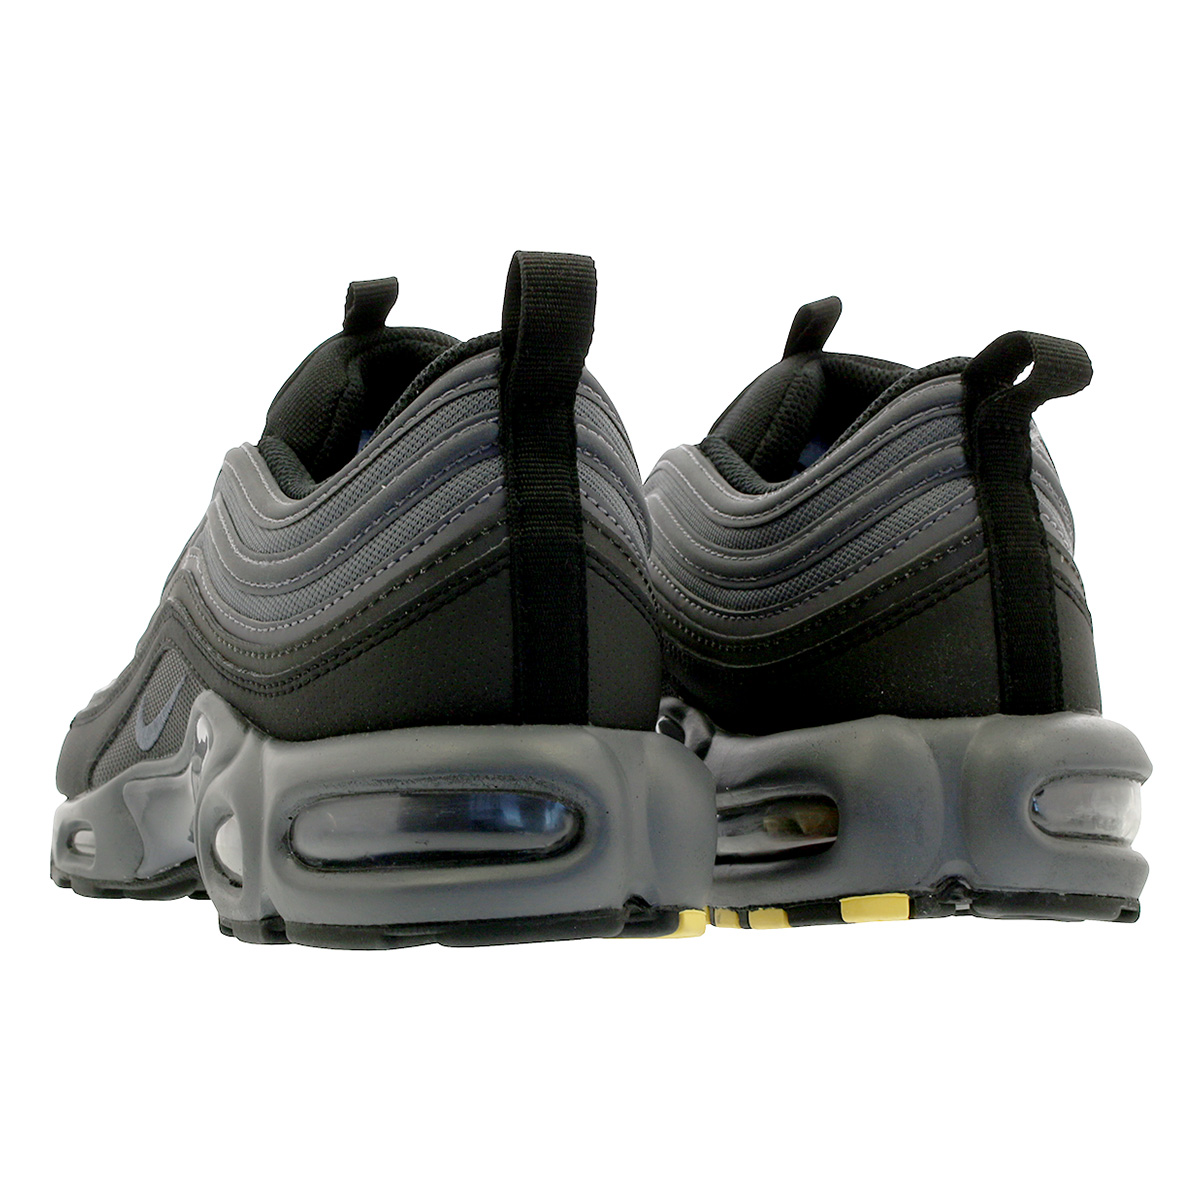 4fc09fa181 ... NIKE AIR MAX PLUS 97 Kie Ney AMAX +97 COOL GREY/PURE PLATINUM cd7859 ...